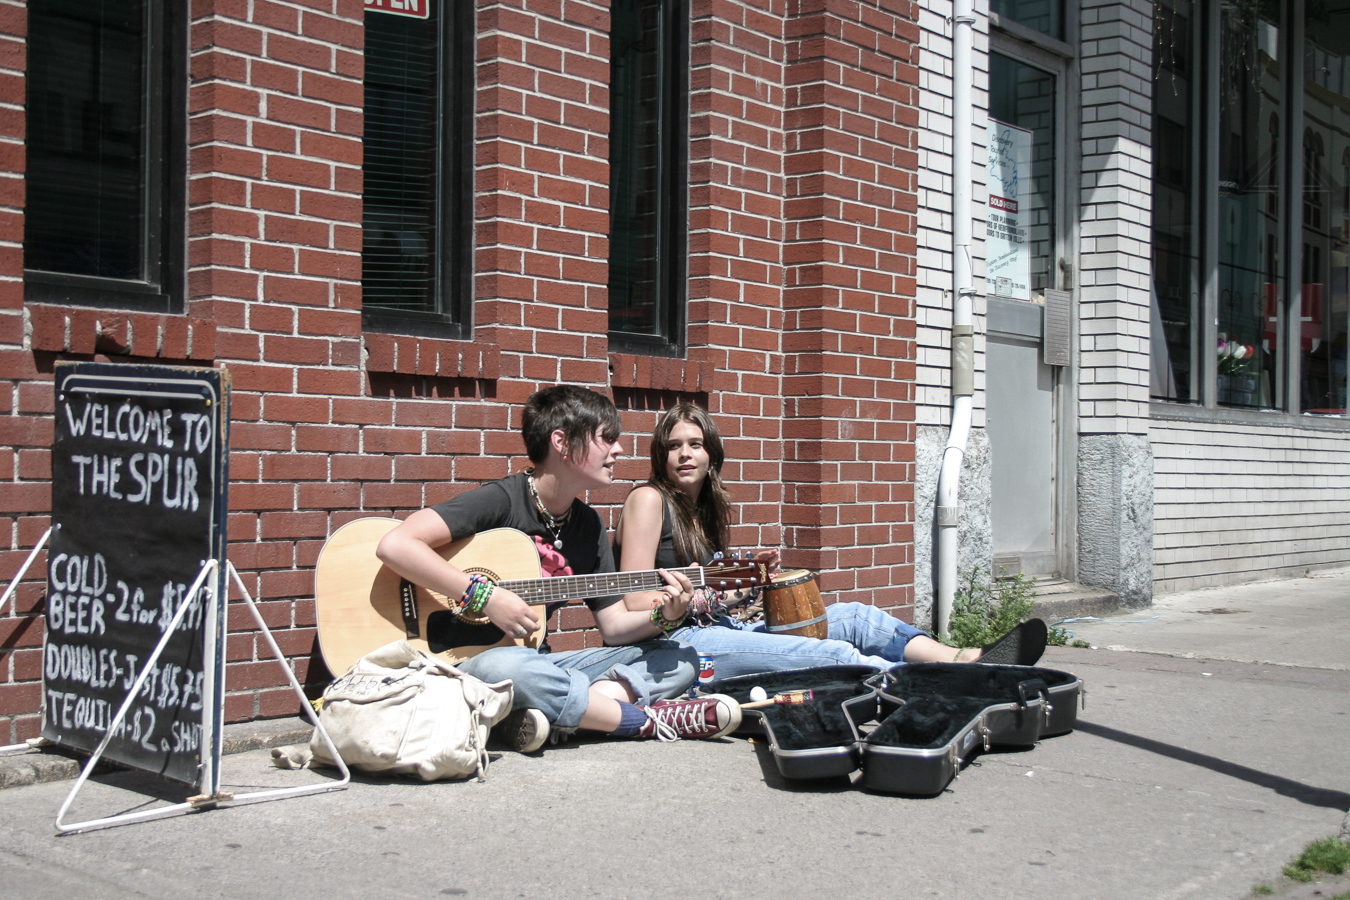 Two Ladies Busking in the AM Sun - The Spur, Water Street - 2004